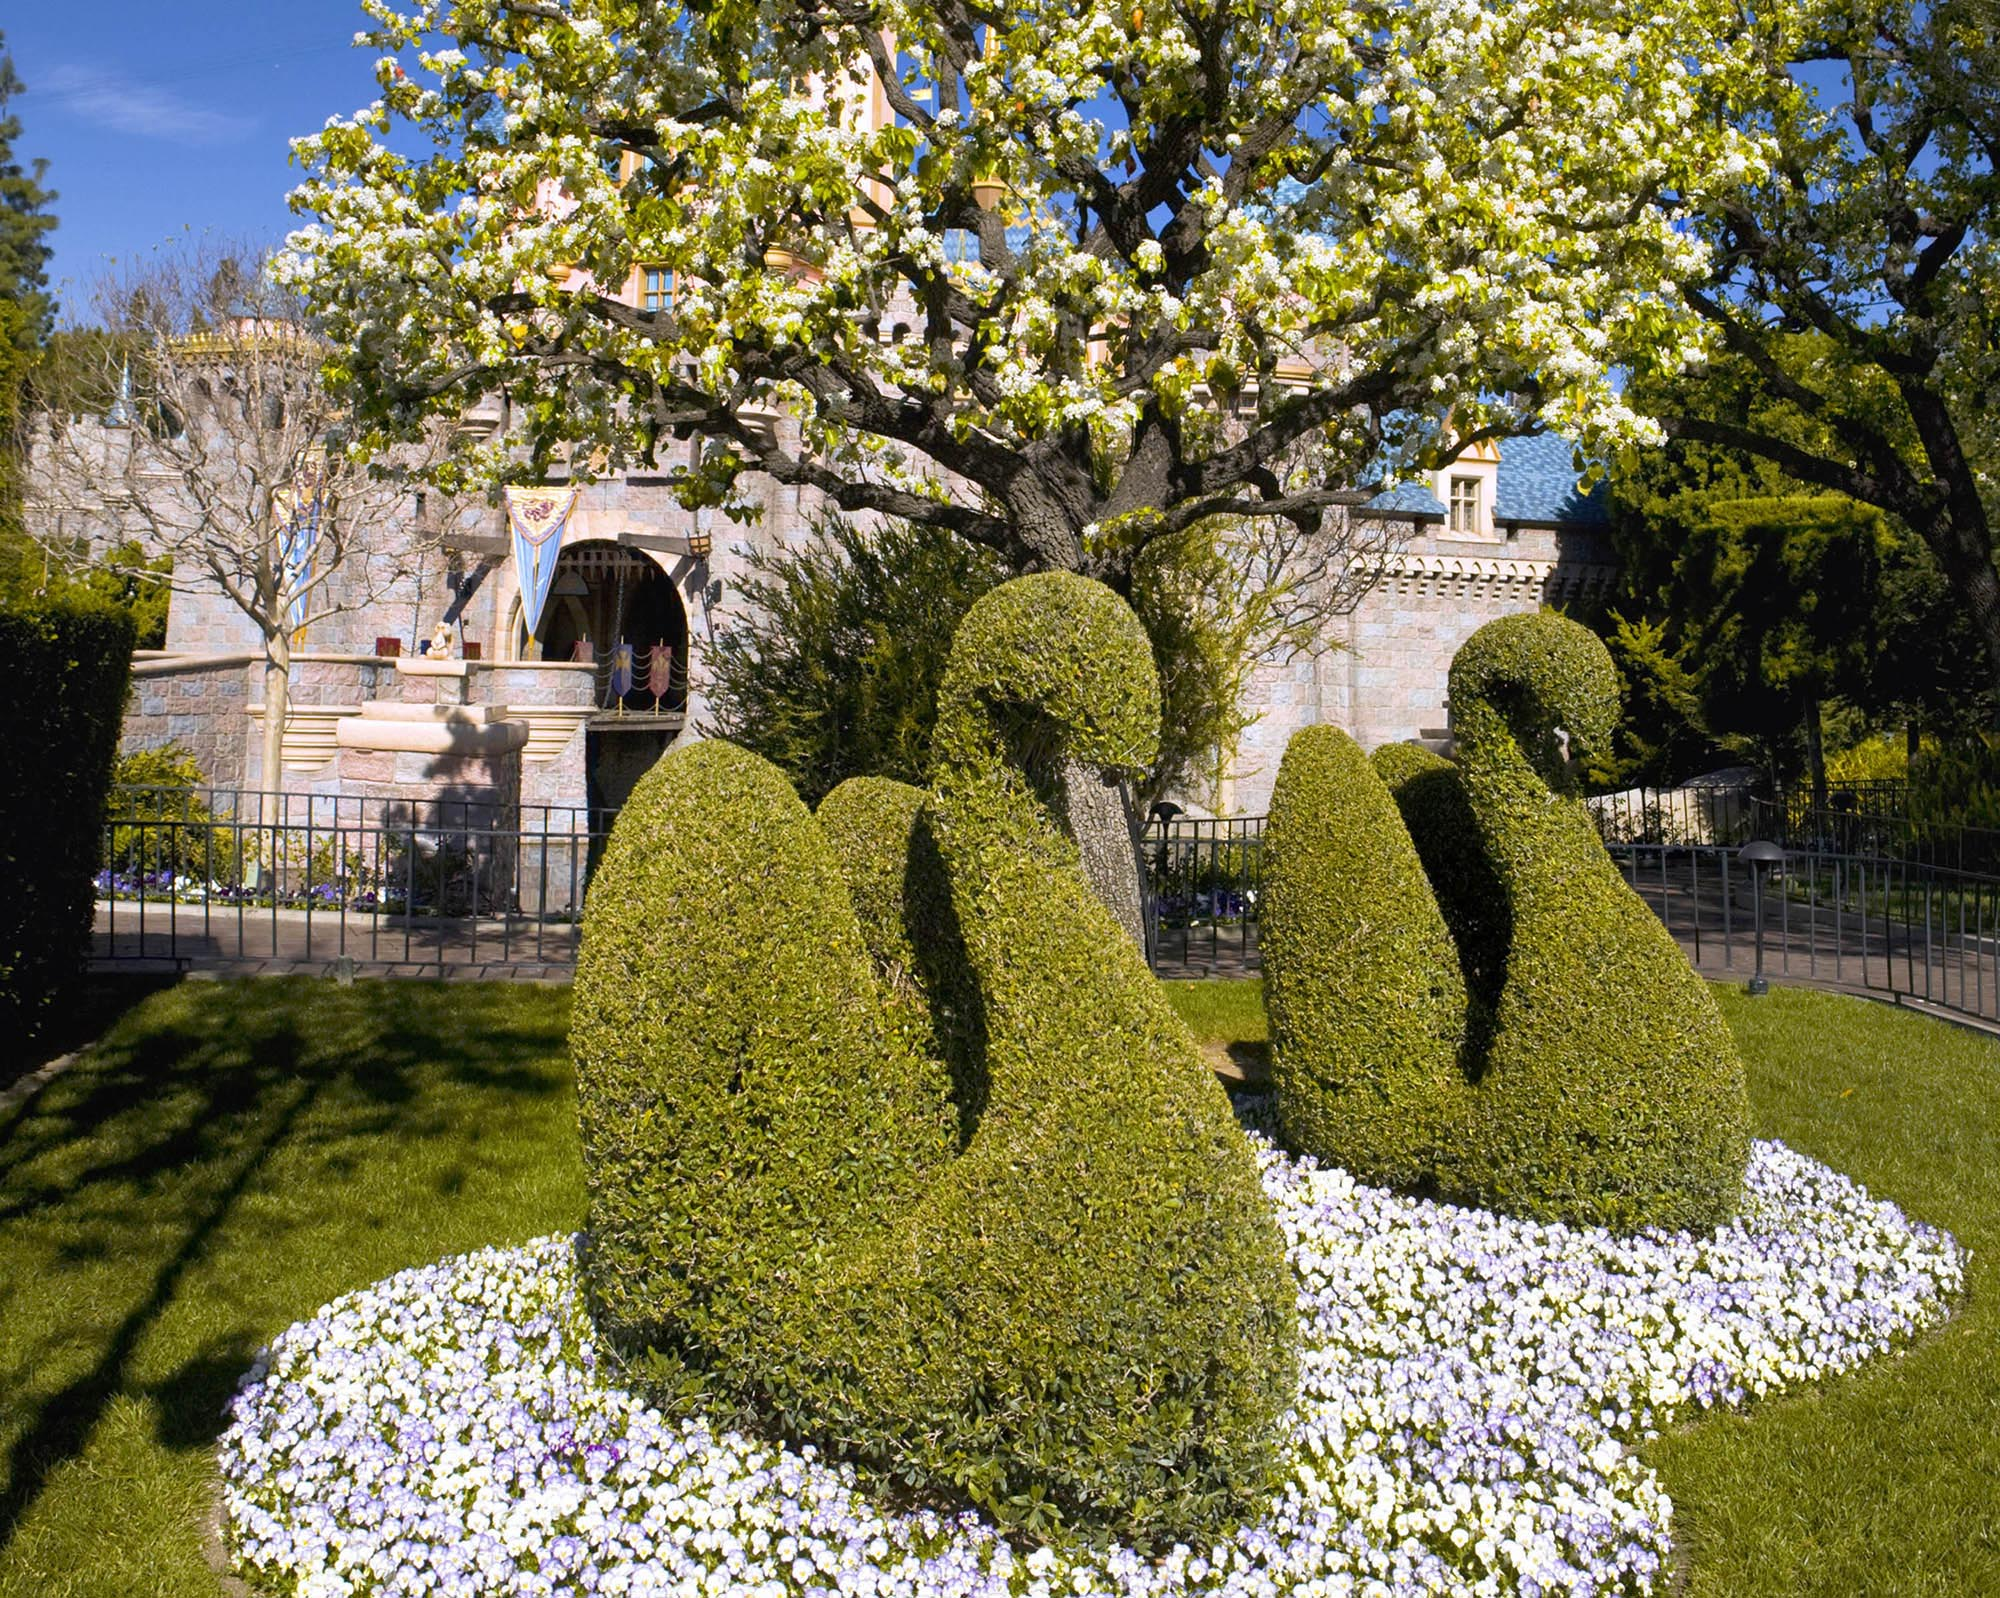 Planting The Magic A Look At Disneyland Horticulture